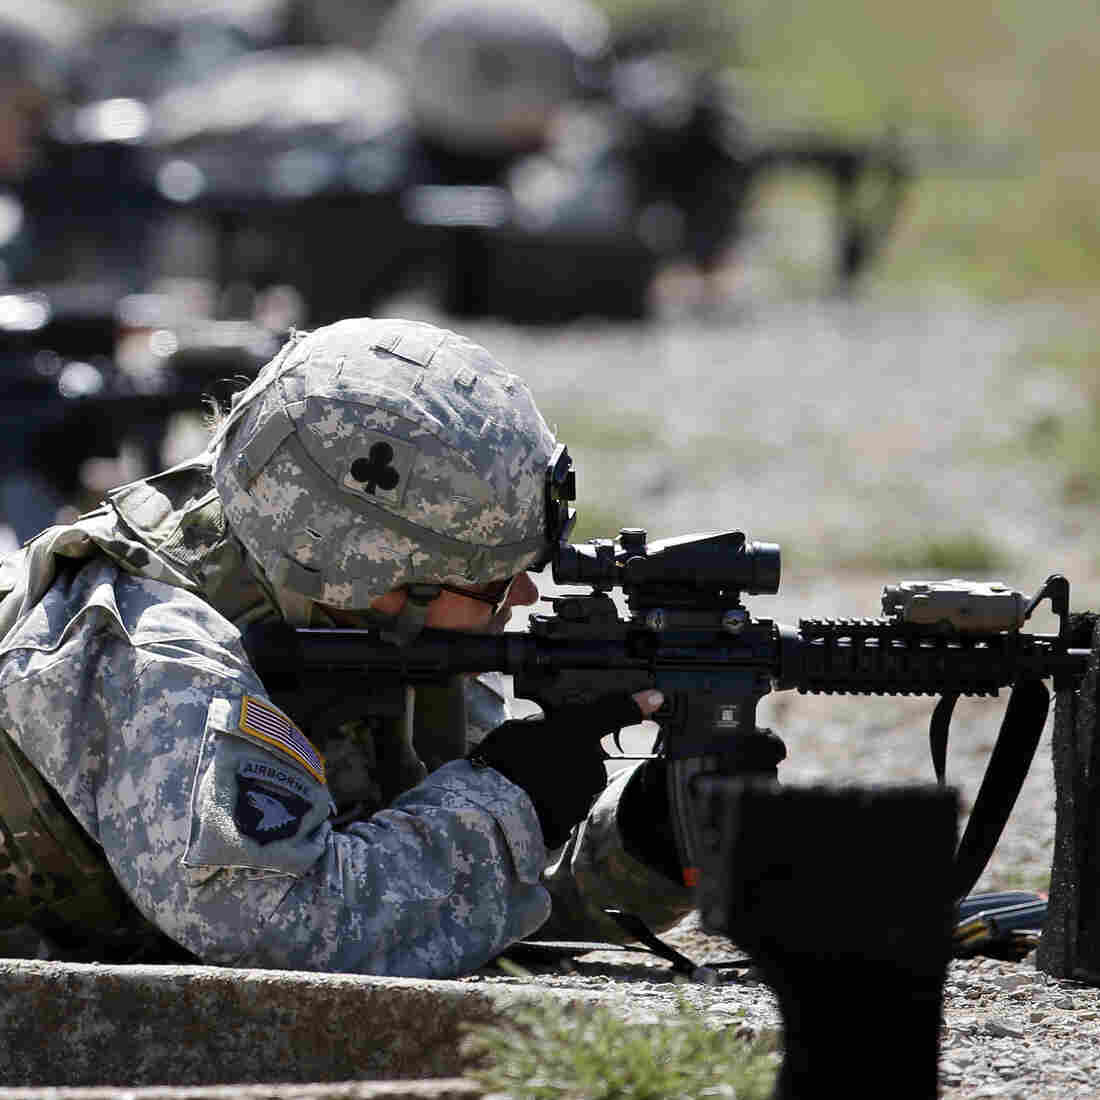 Female soldiers from 1st Brigade Combat Team, 101st Airborne Division train on a firing range in Fort Campbell, Ky., in preparation for their deployment to Afghanistan. The Pentagon announced Thursday that women will no longer be banned from combat roles.